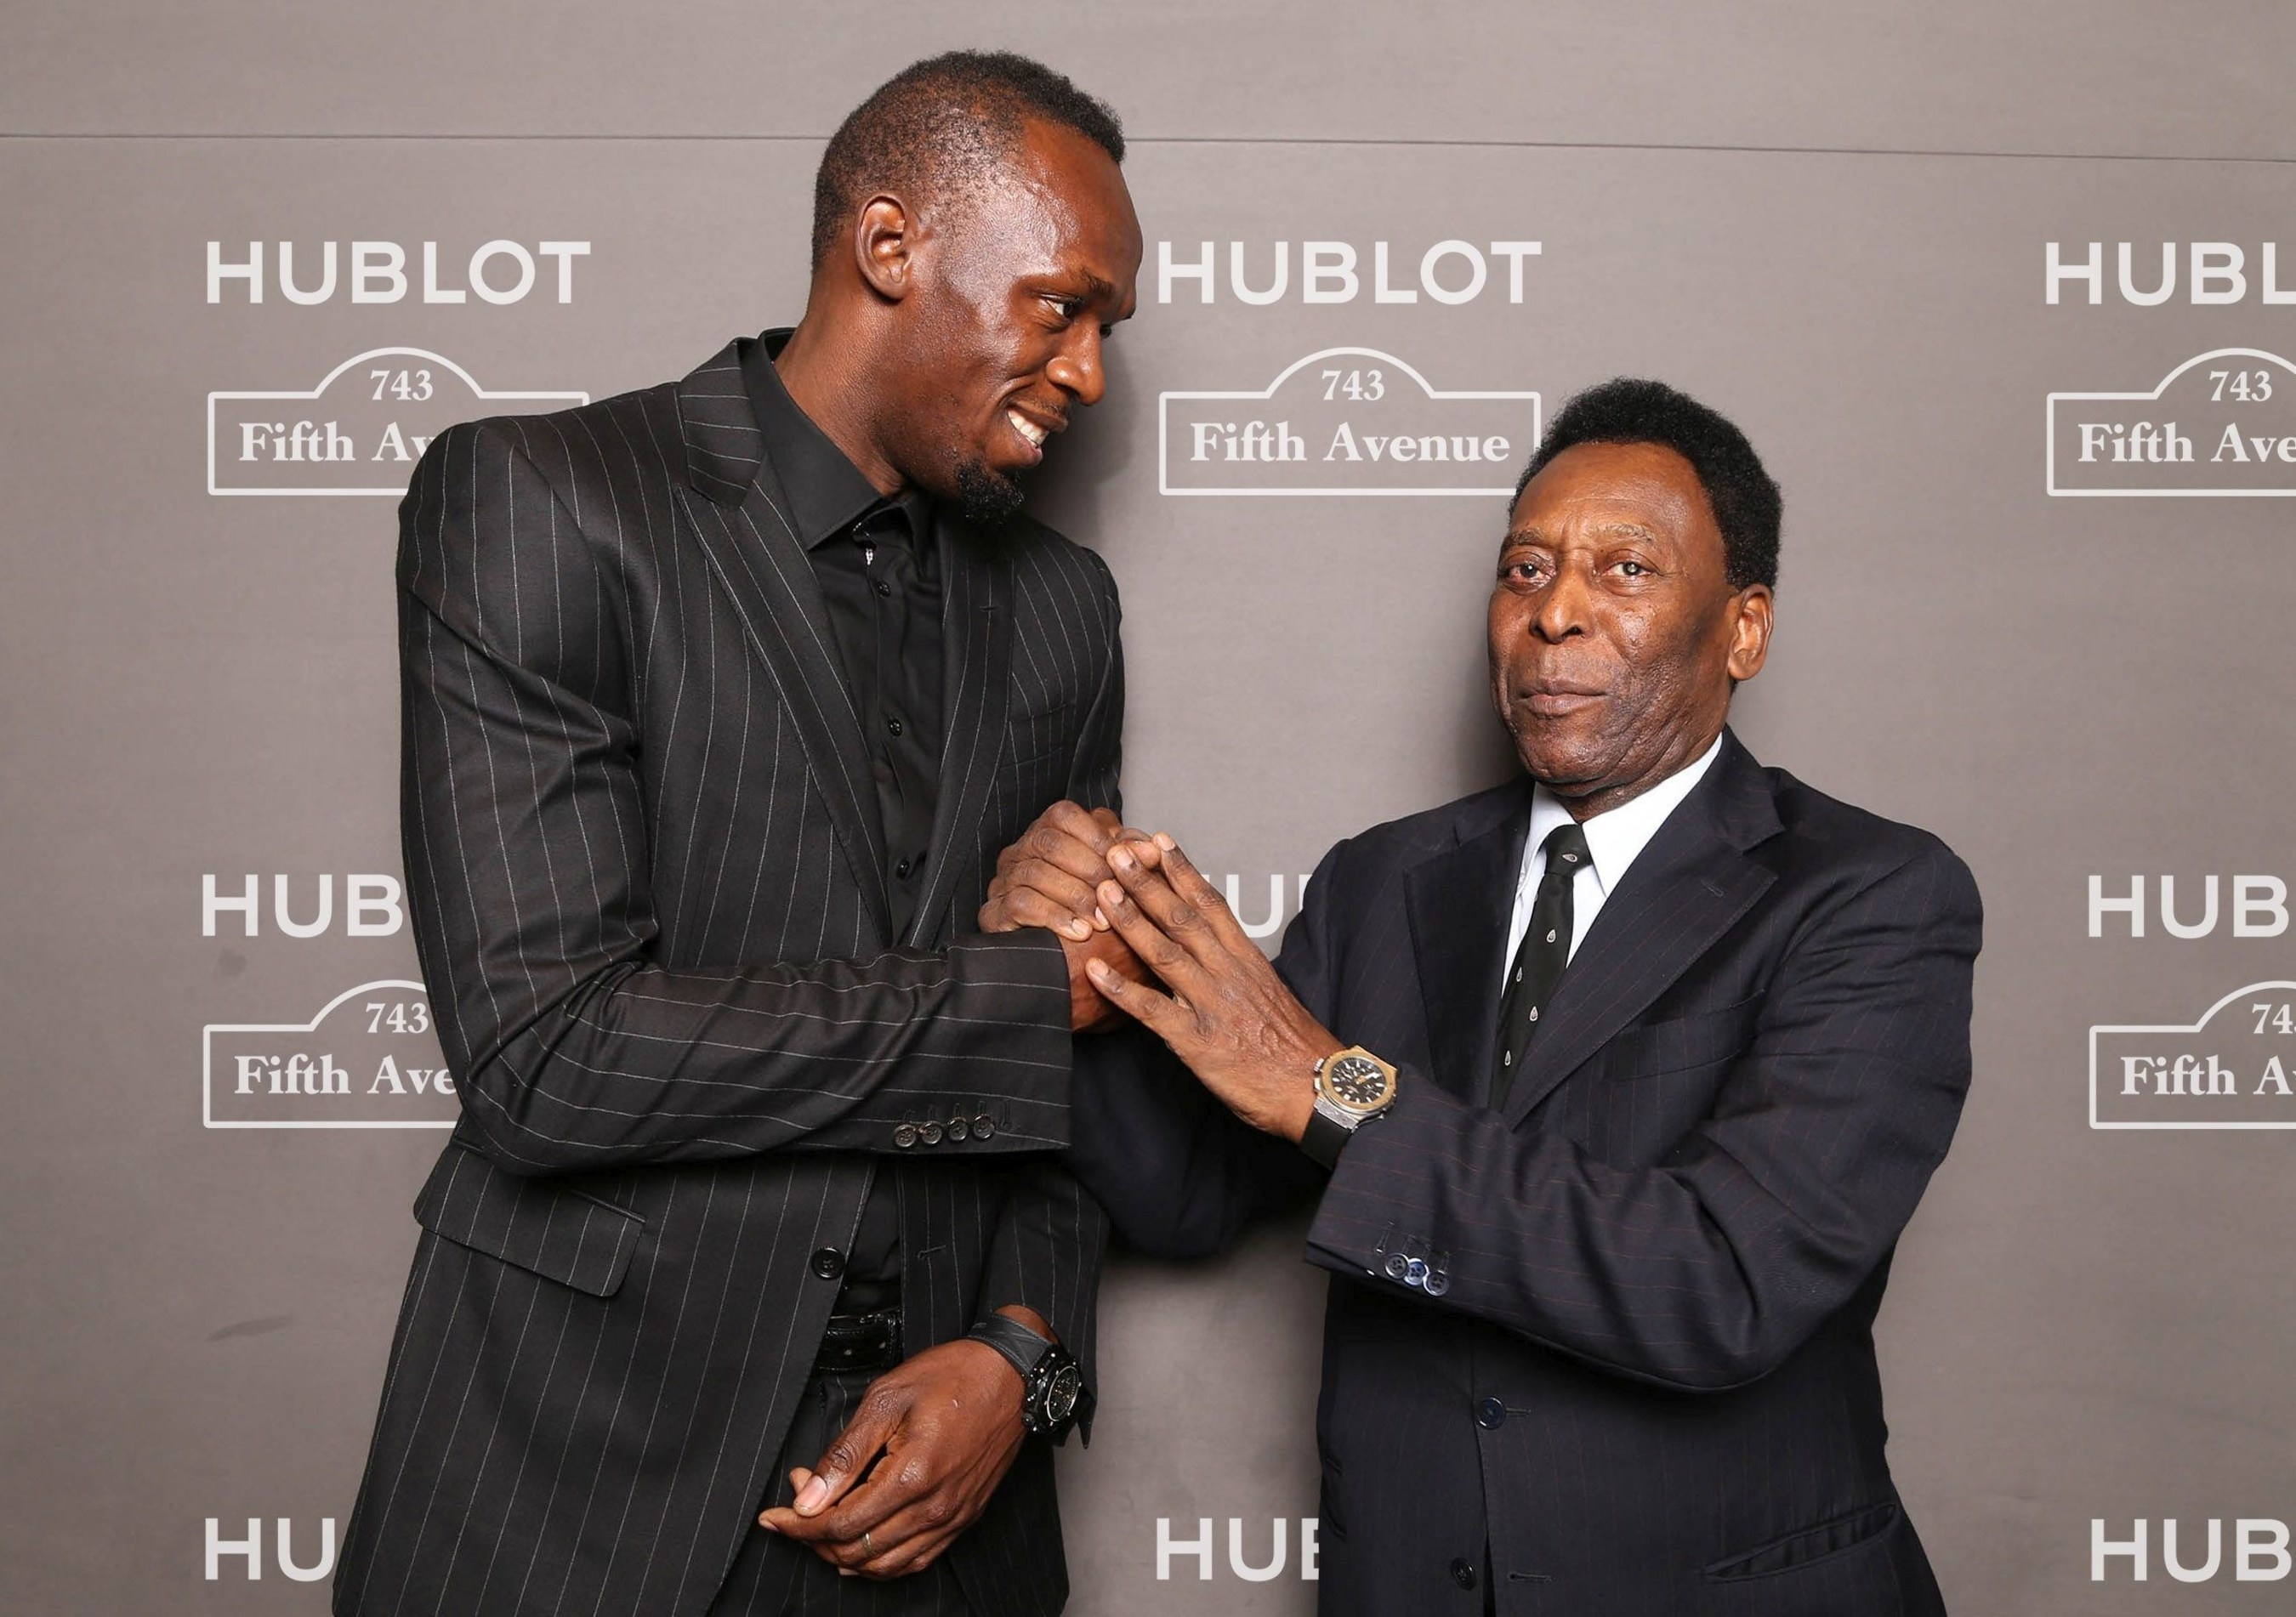 Usain Bolt and Pele at Hublot 5th Avenue (NYC) Boutique Opening